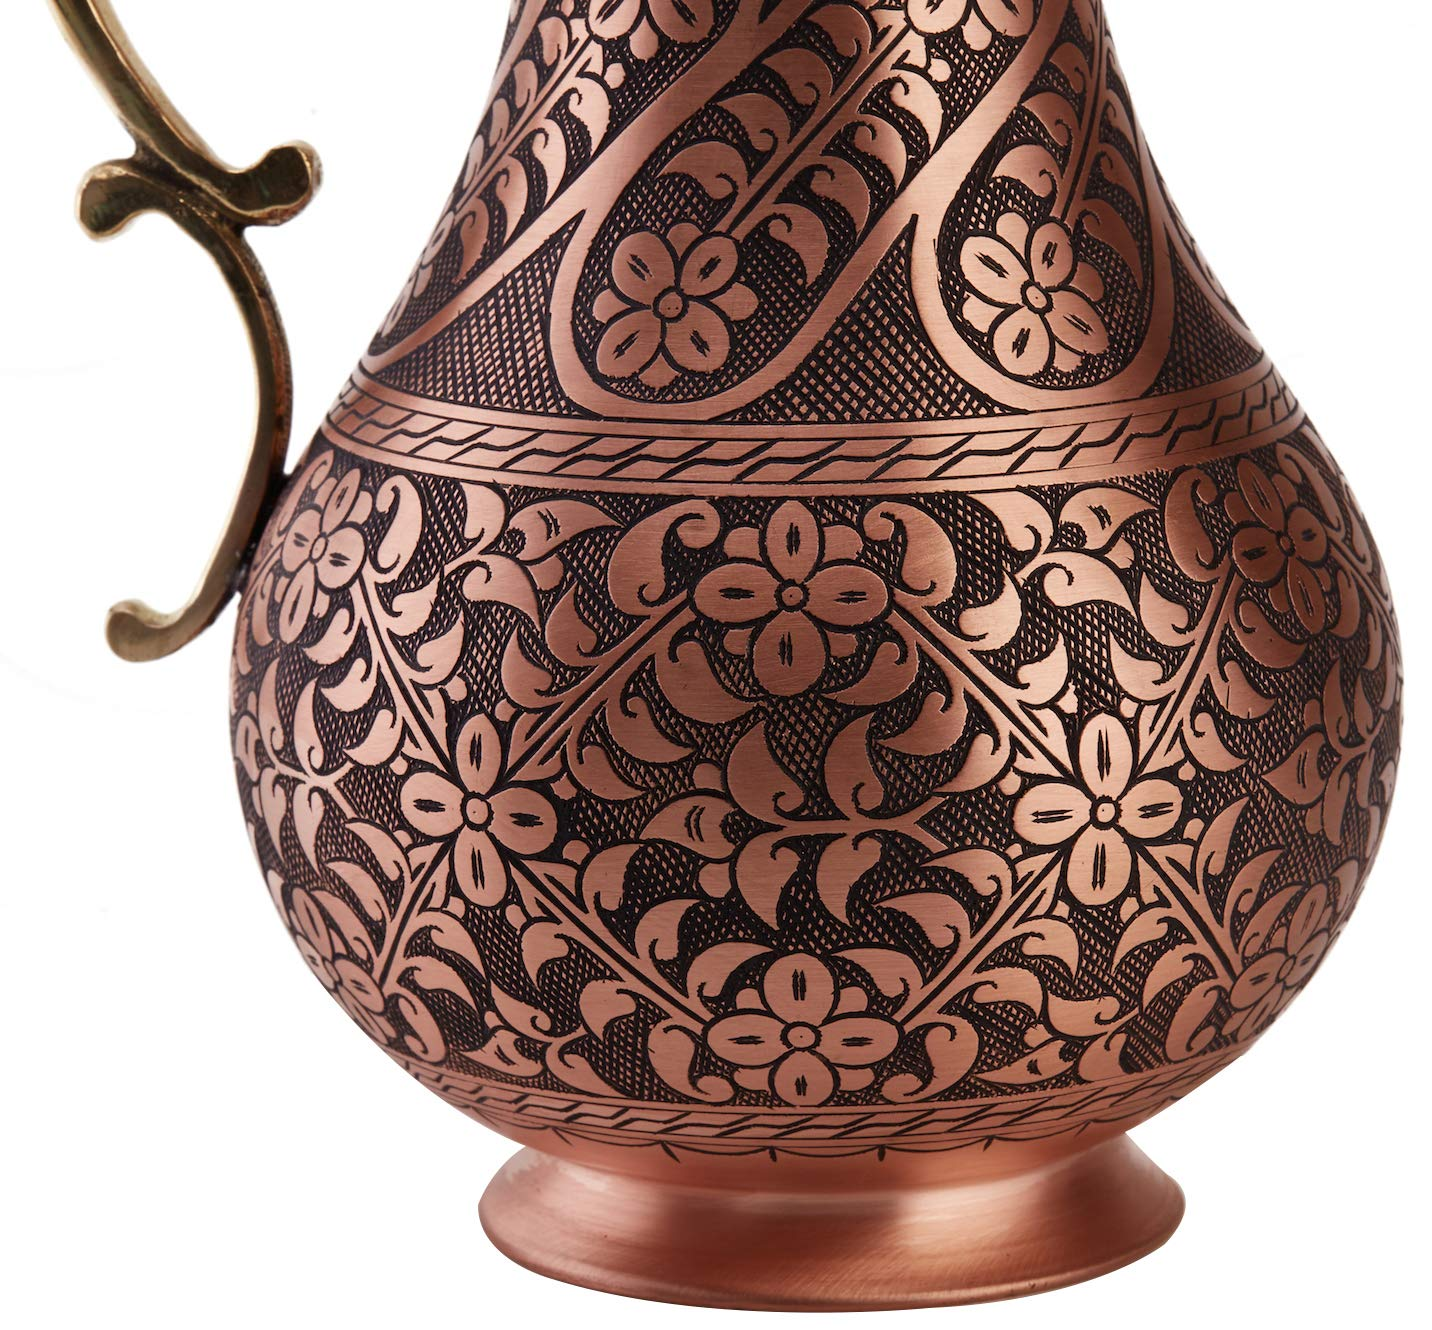 DEMMEX The Pitcher, 1mm Solid Copper Handmade Engraved Copper Pitcher Vessel Ayurveda Jug for Drinking Water, Moscow Mule, Cocktail (Matte-ArtWork) by DEMMEX (Image #4)